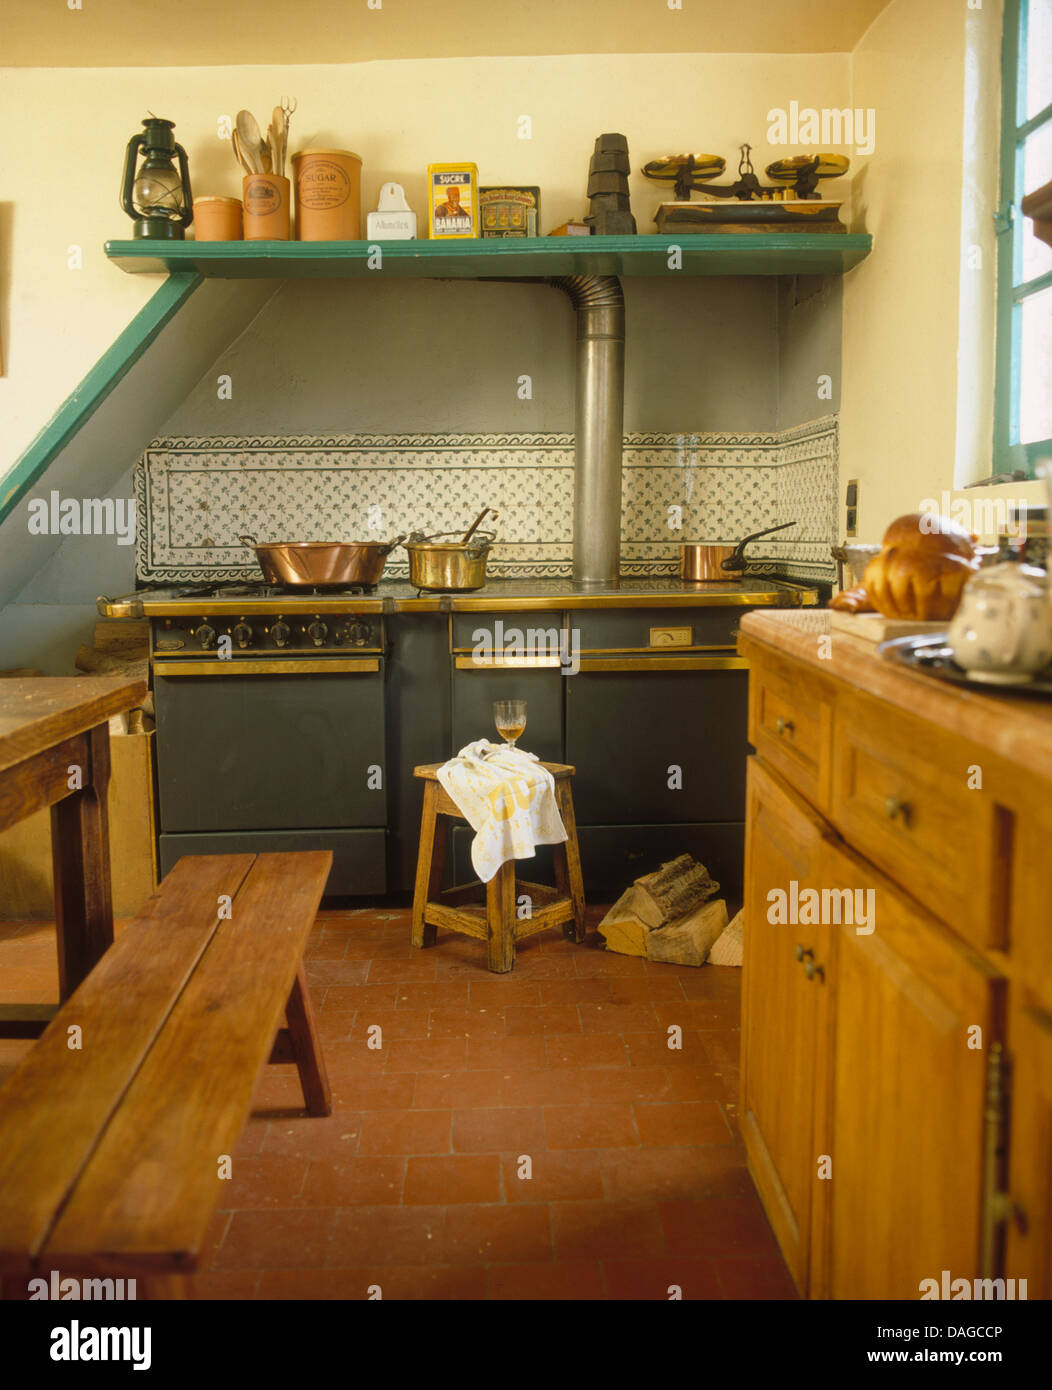 Range Oven And Quarry Tiled Floor In French Country Kitchen With Rustic Wooden  Bench And Table